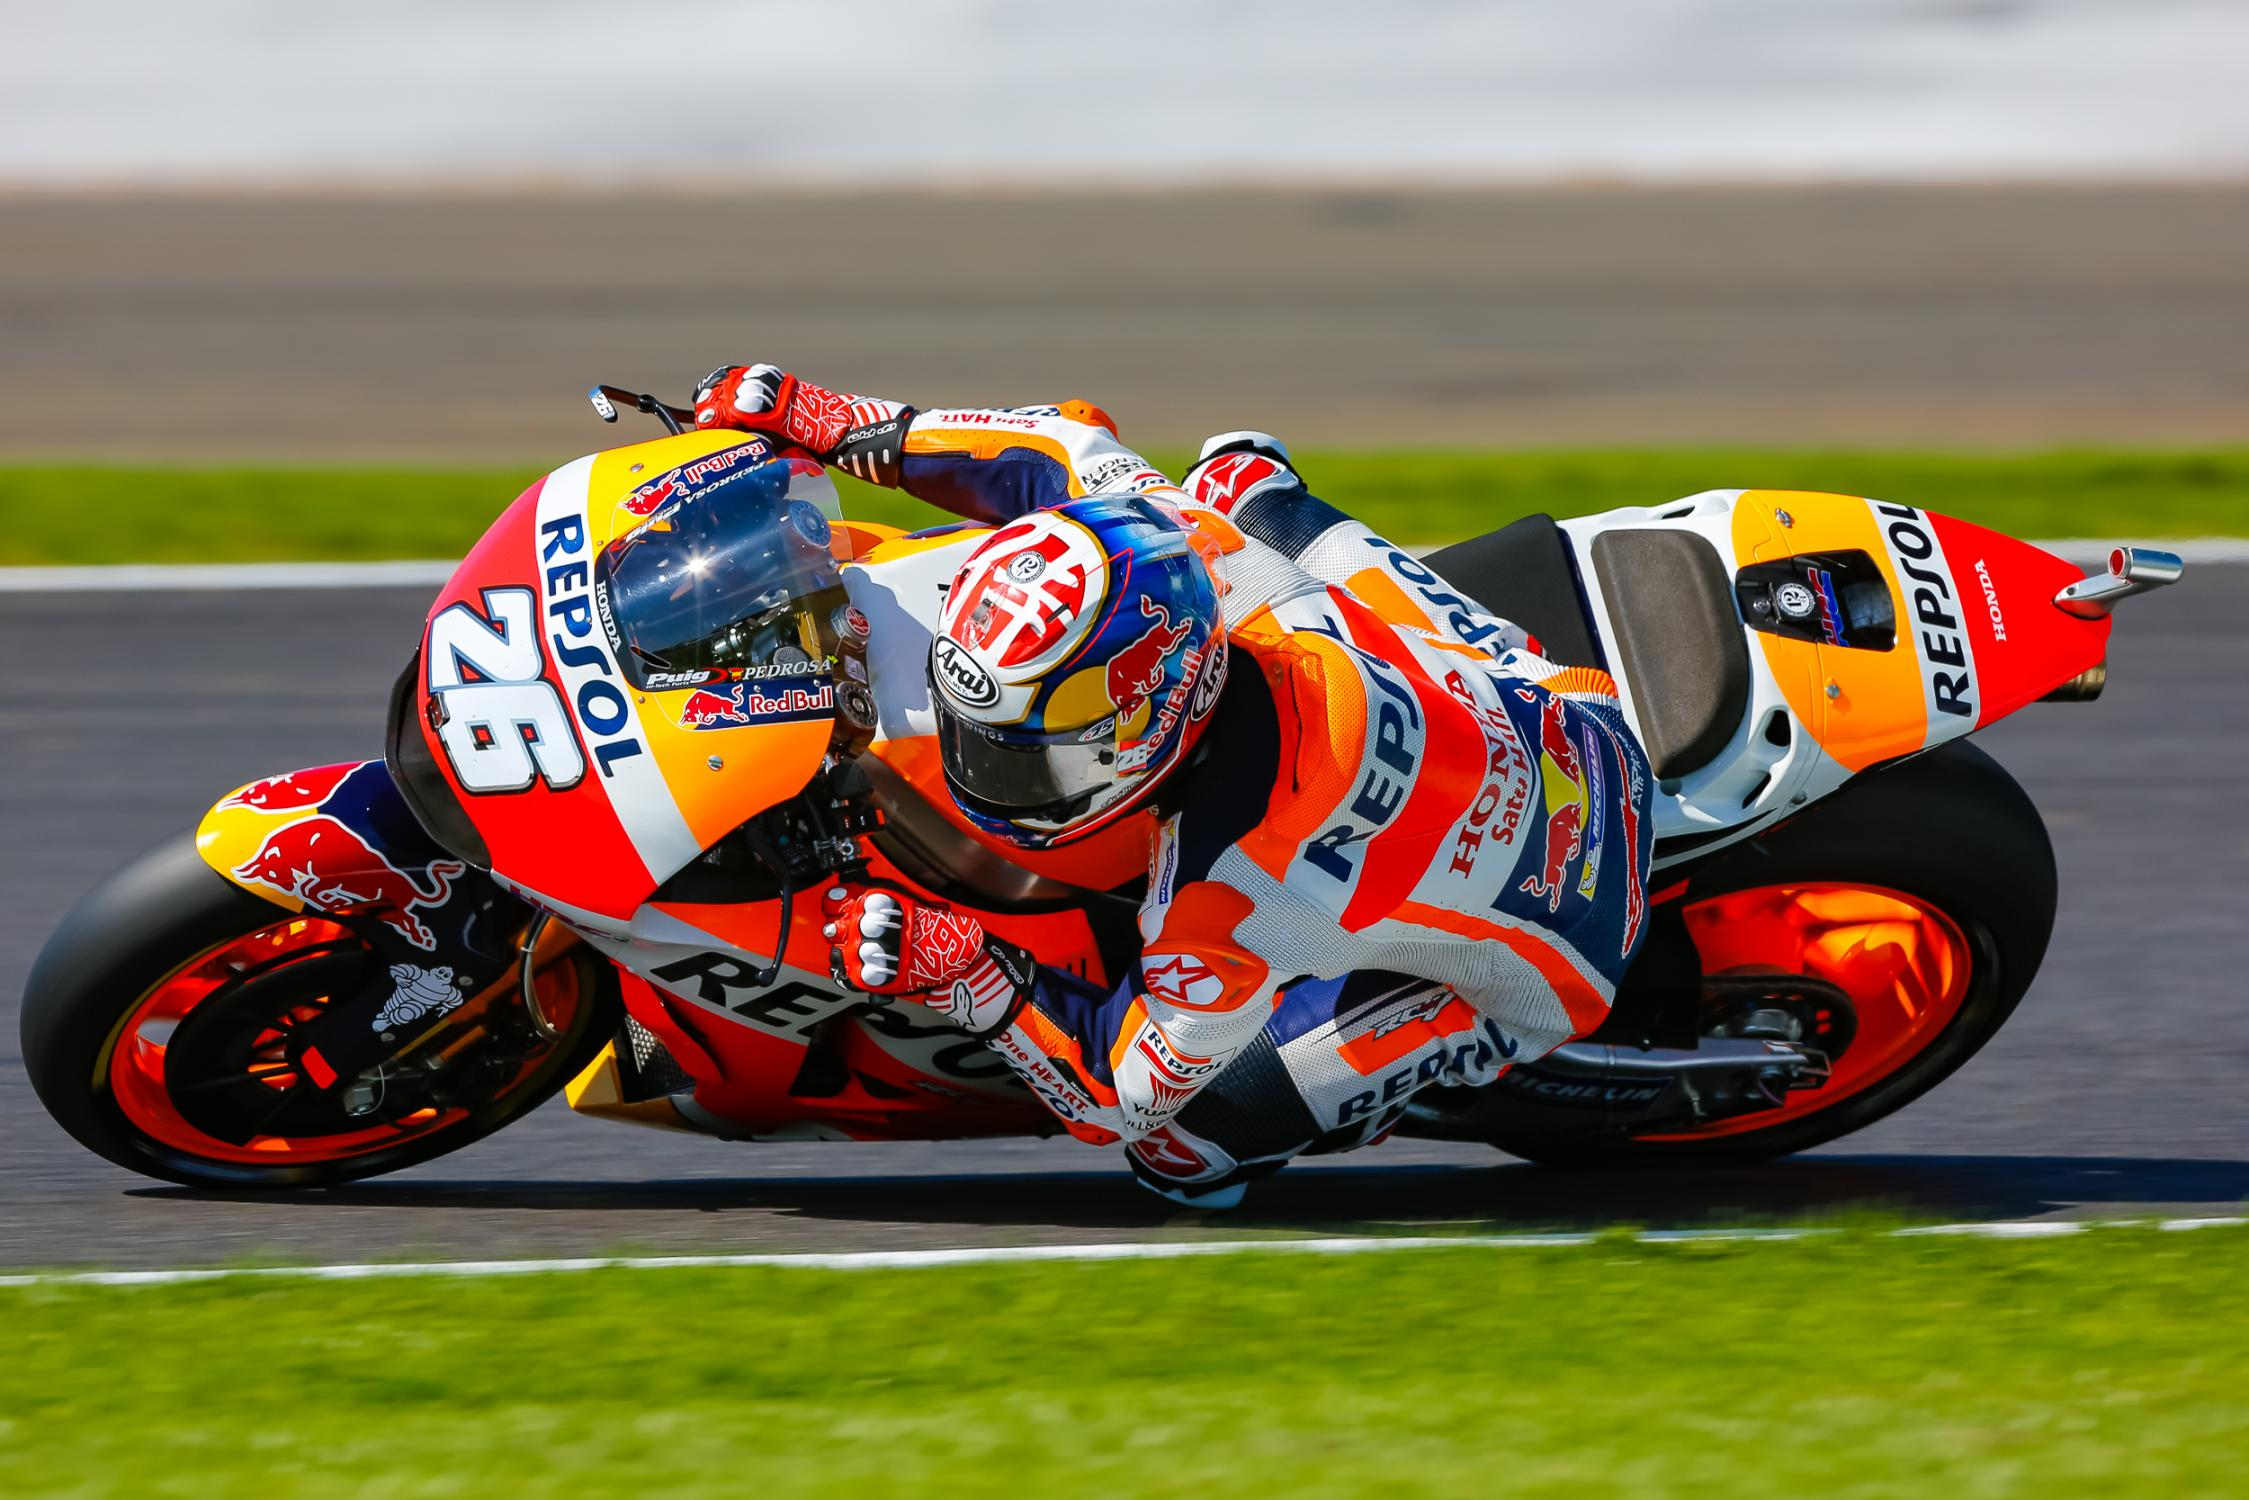 26-dani-pedrosa-esp_gp_4280.gallery_full_top_fullscreen.jpg